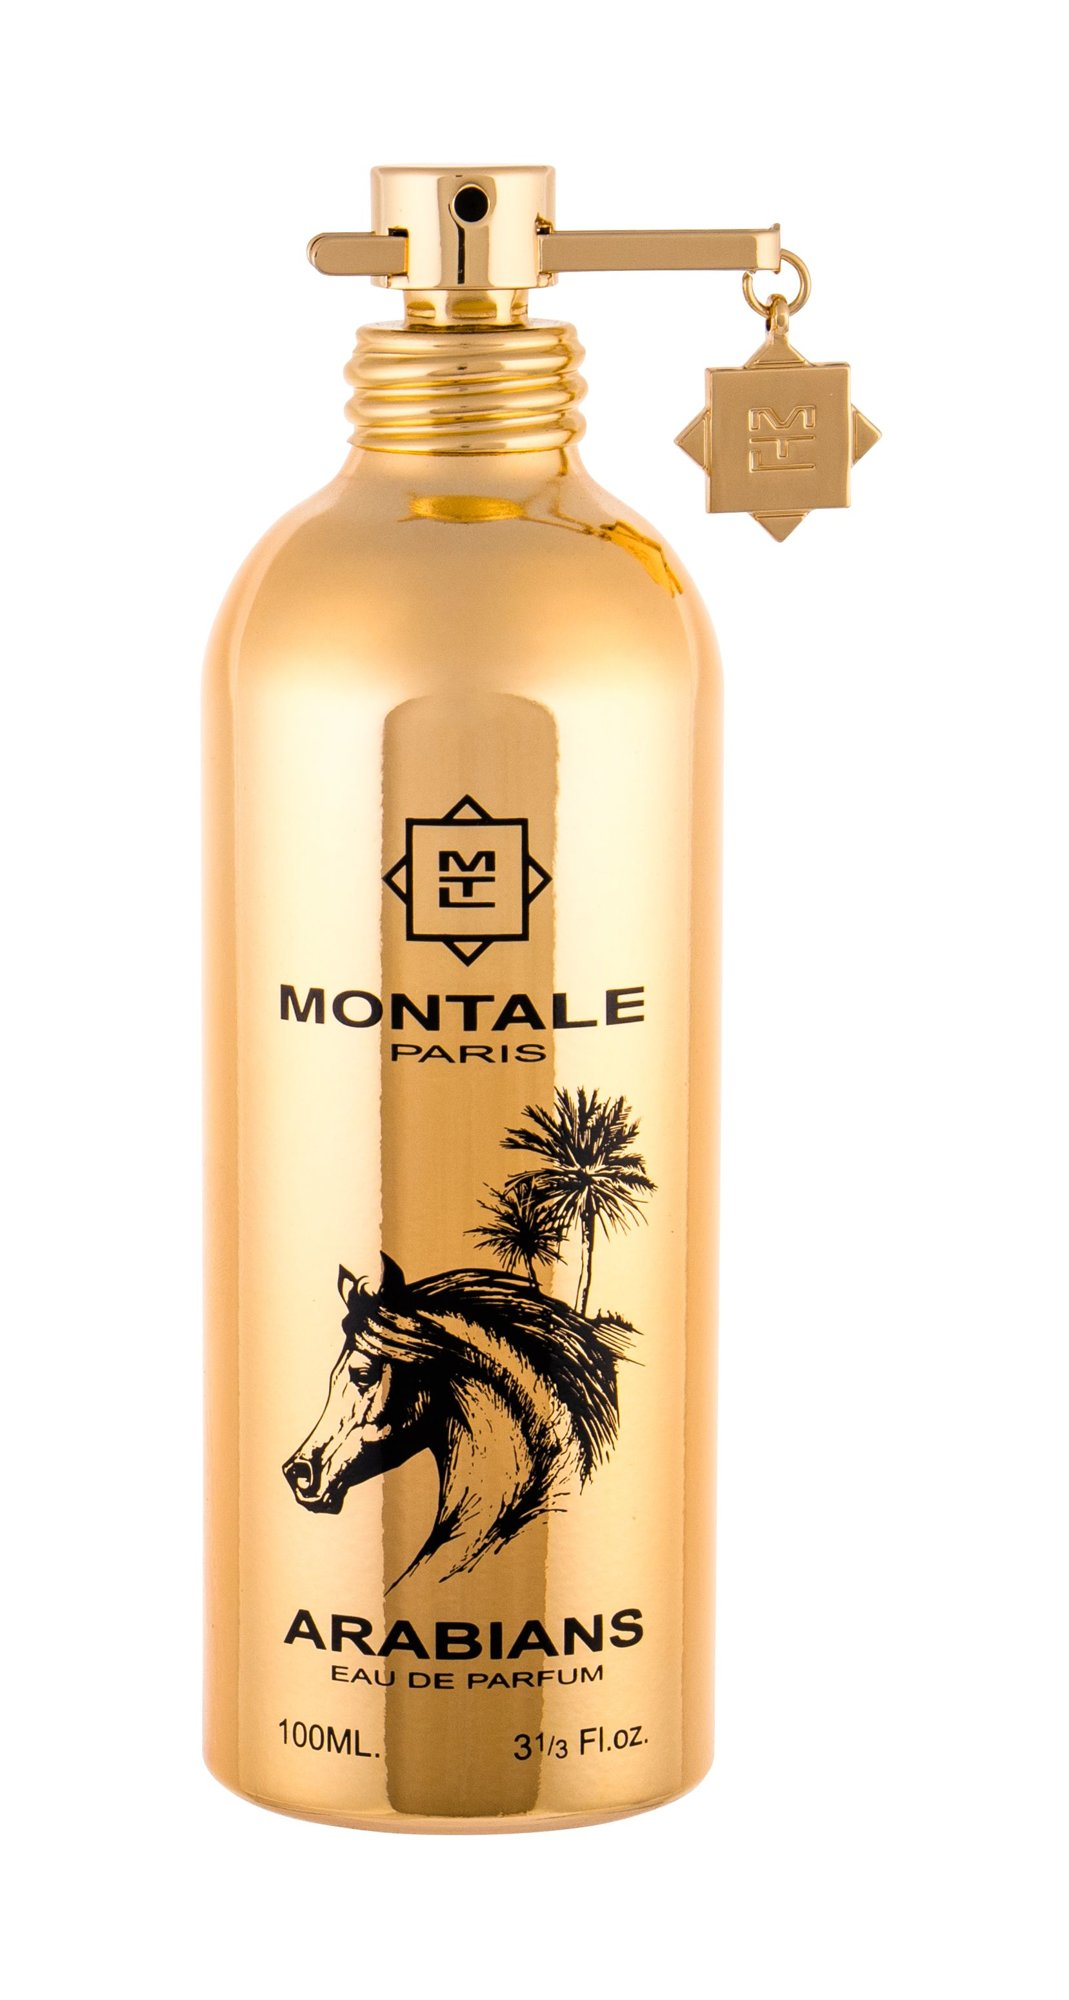 Montale Paris Arabians Eau de Parfum 100ml